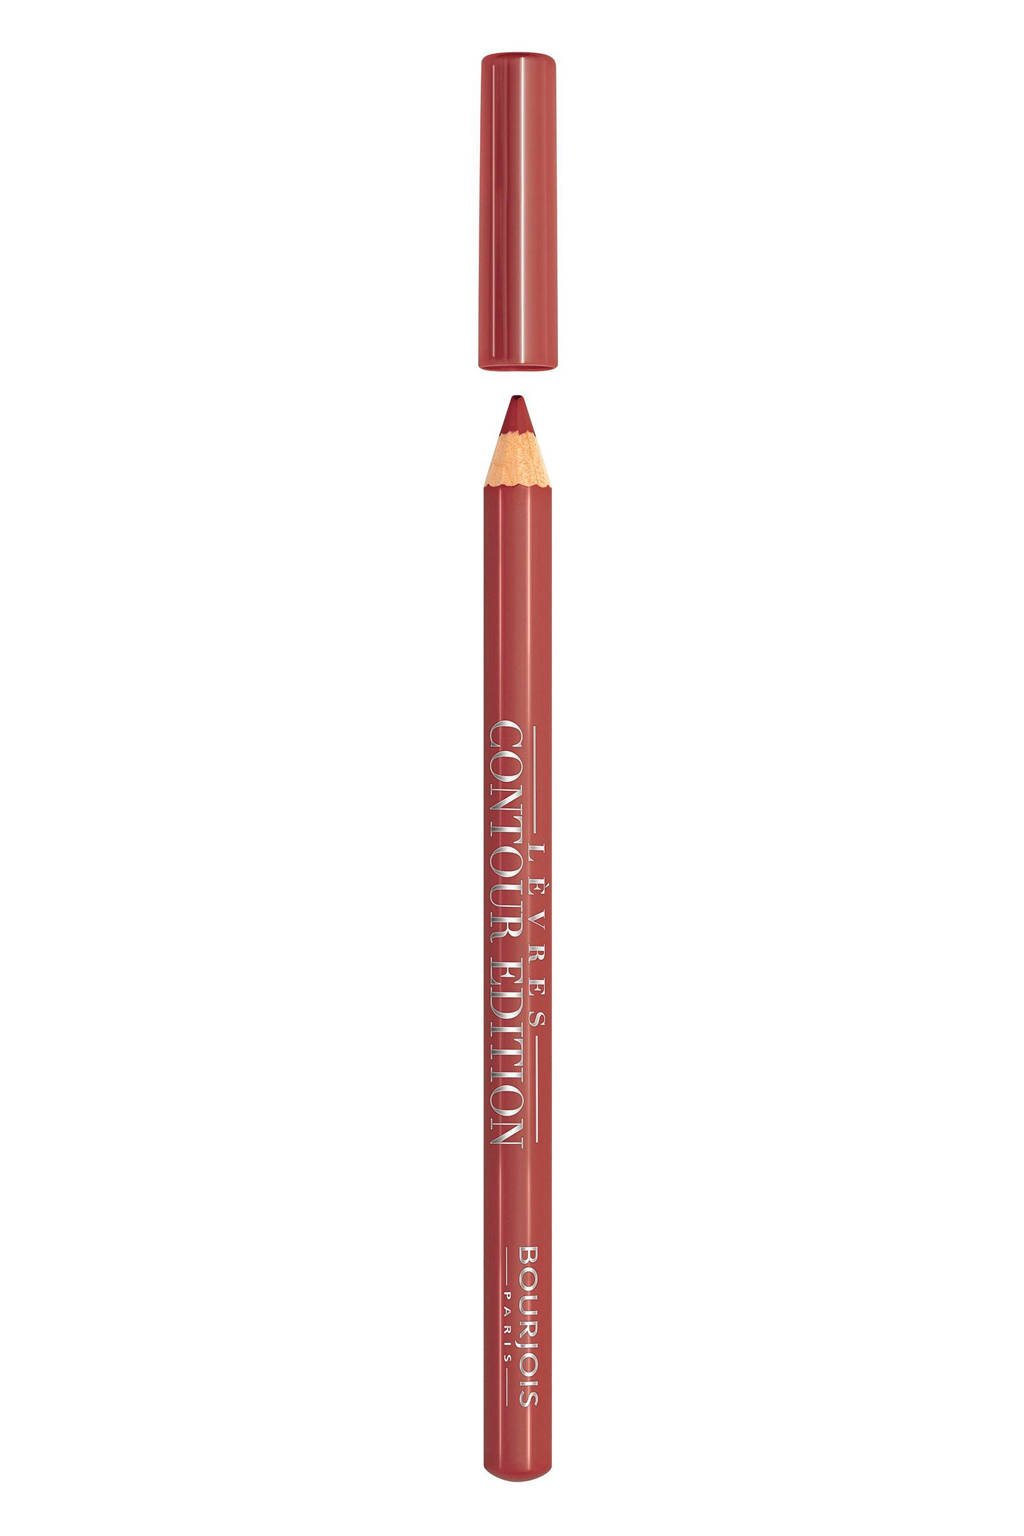 Bourjois Levres Contour lippotlood - 11 Funky Brown